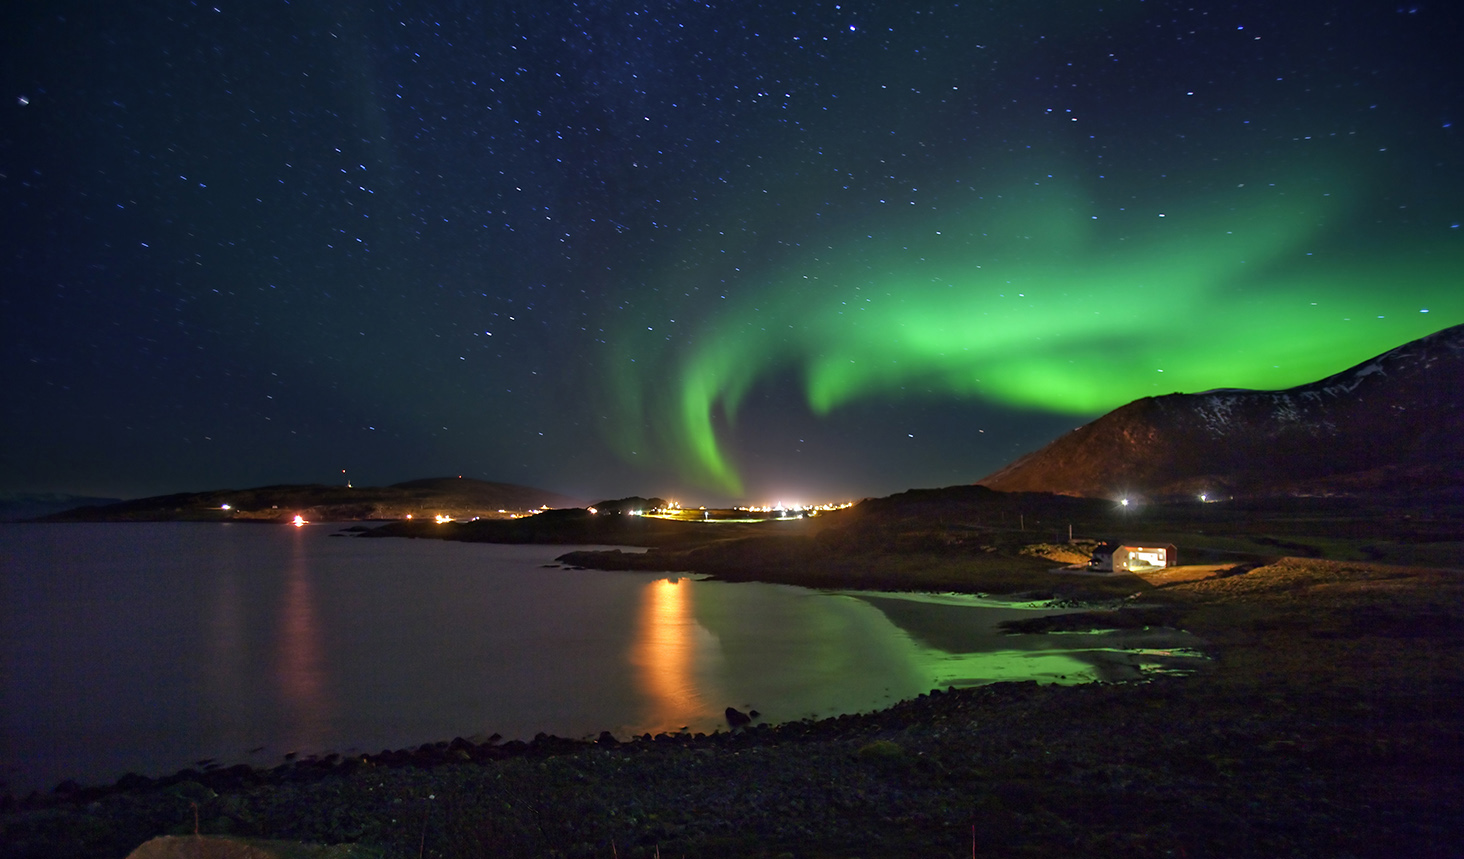 Northern lights in Hasvik, Finnmark.